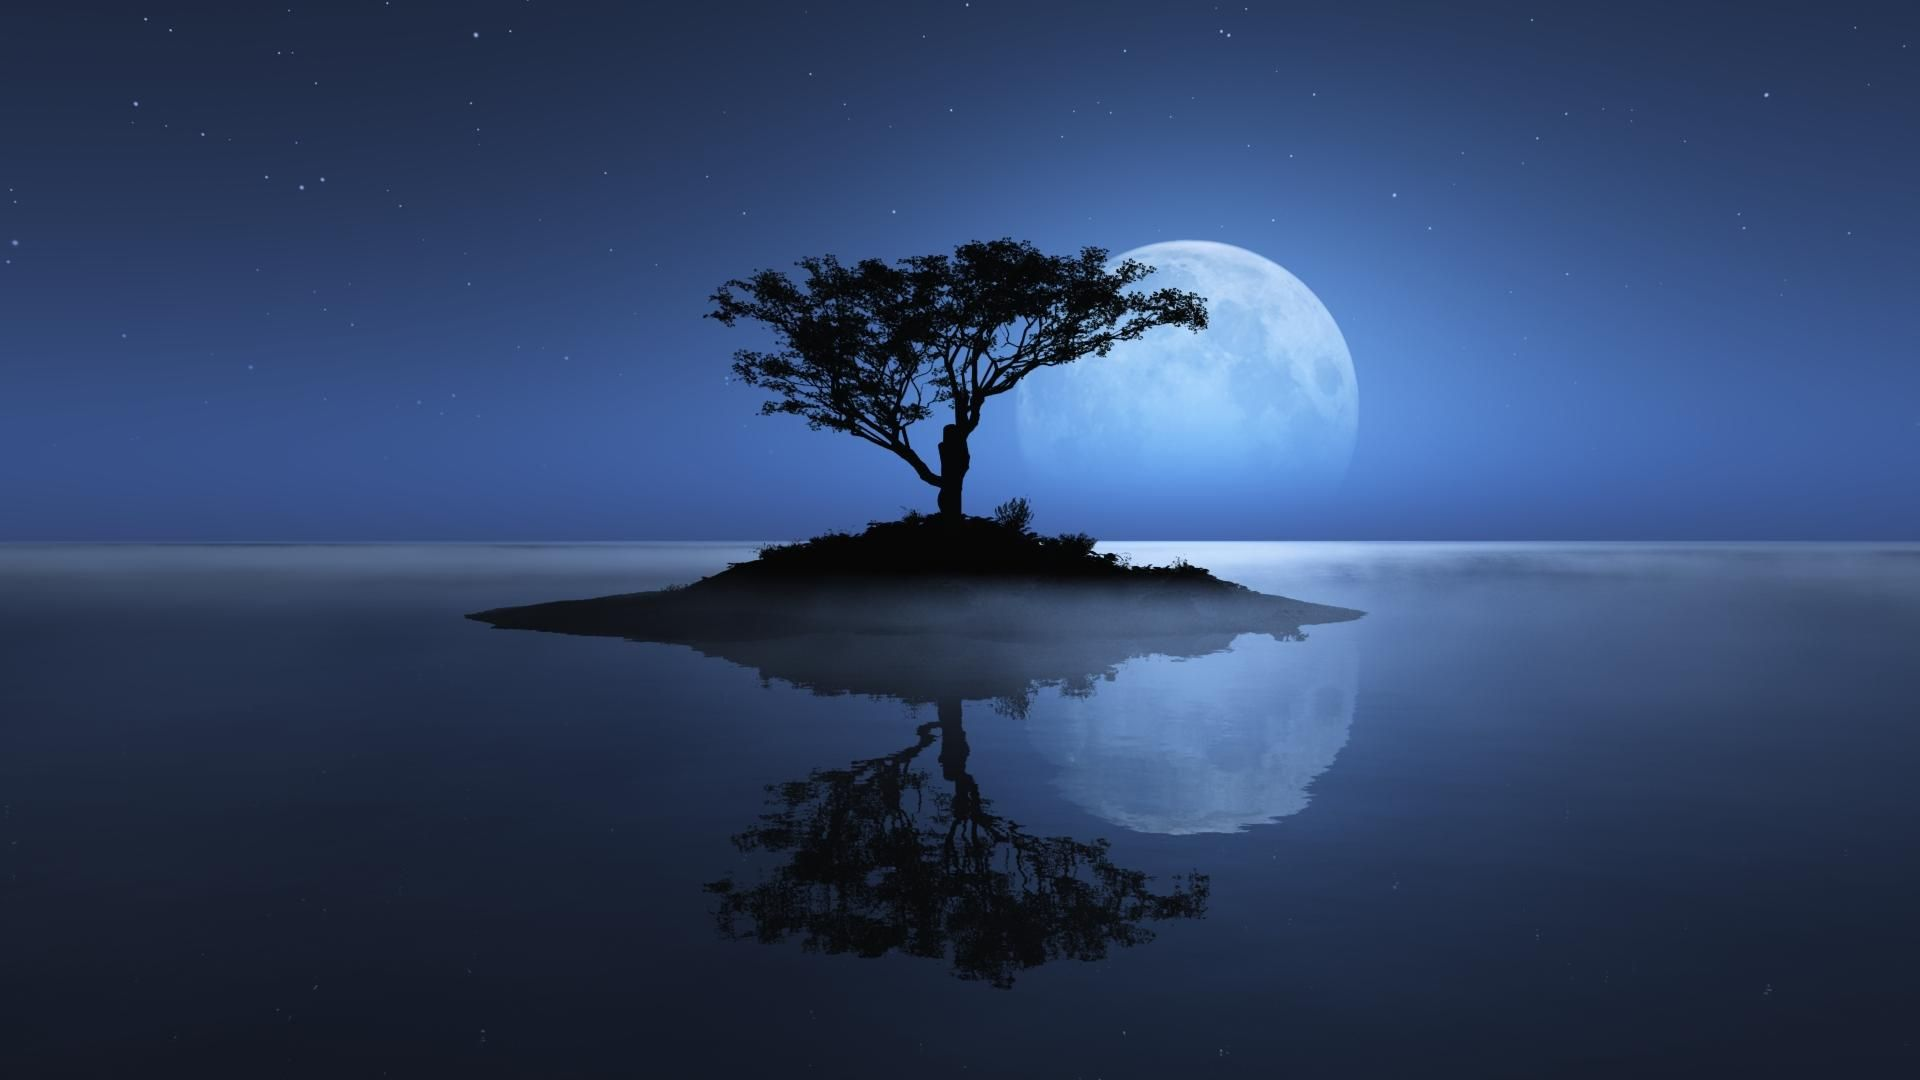 3d nature wallpaper | full moon night nature hd wallpapers 1080p